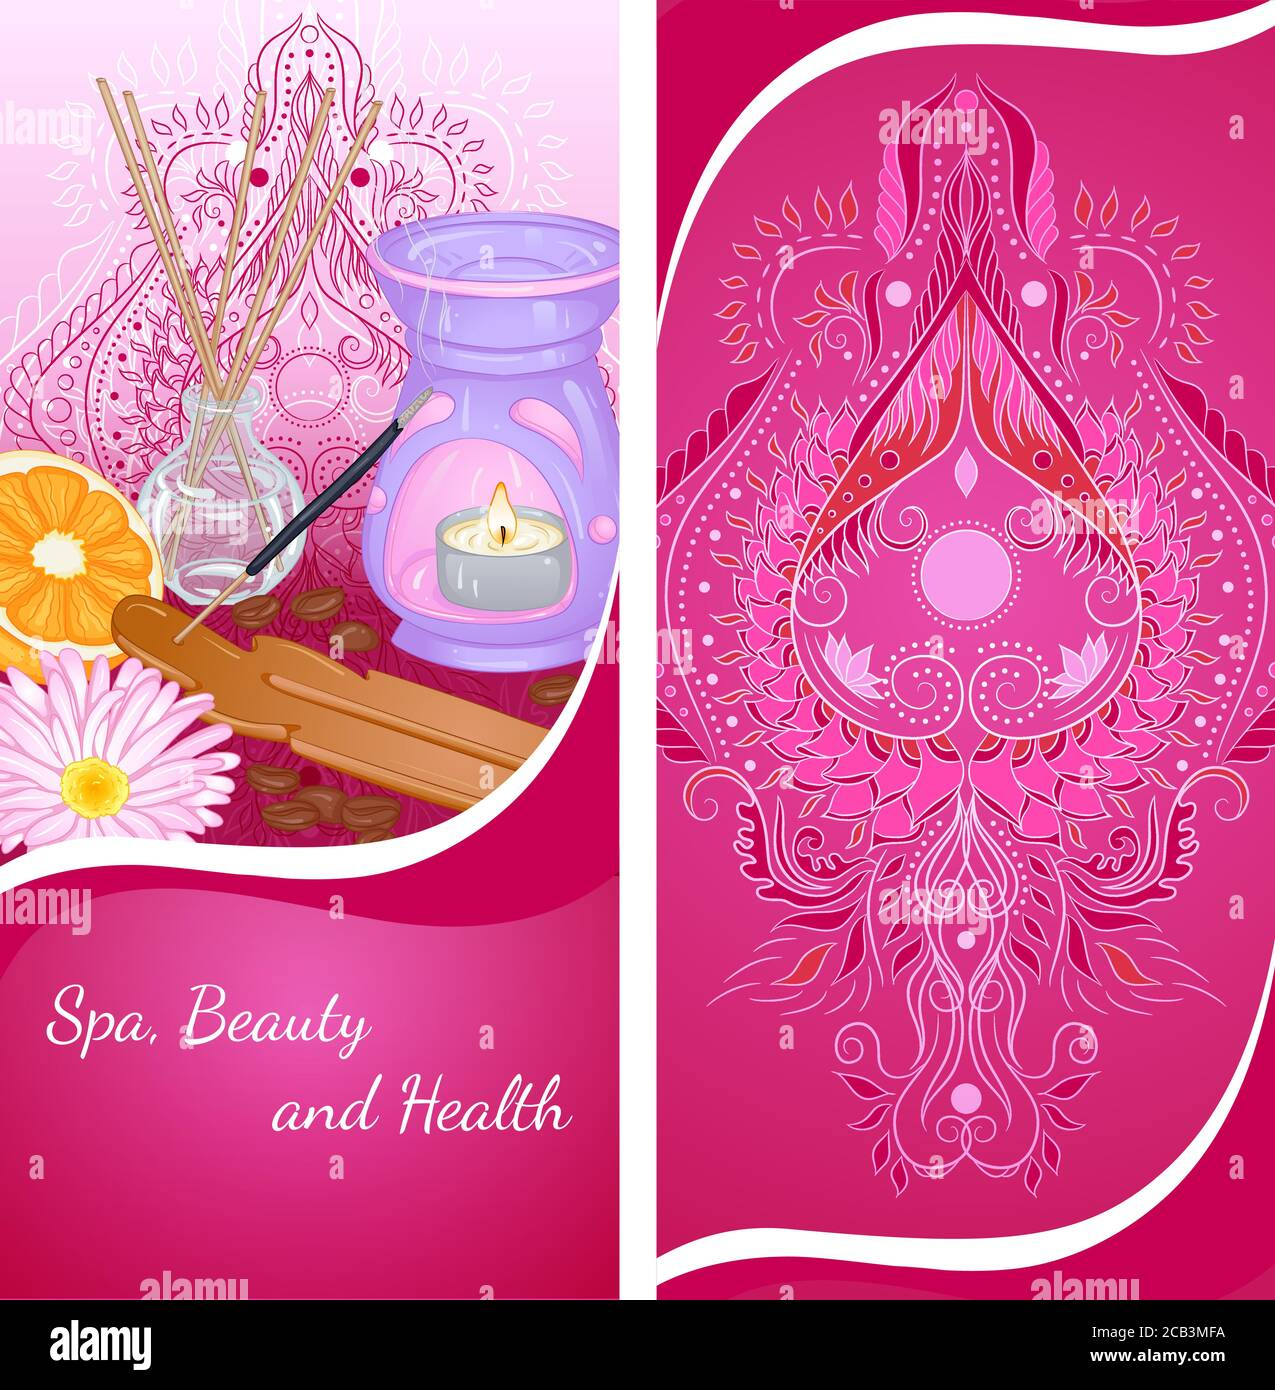 Vector Illustration Of A Vertical Banner Template With Accessories For Spa And Aromatherapy Design For A Spa Massage And Beauty Salon Relax Aromatherapy Stock Vector Image Art Alamy